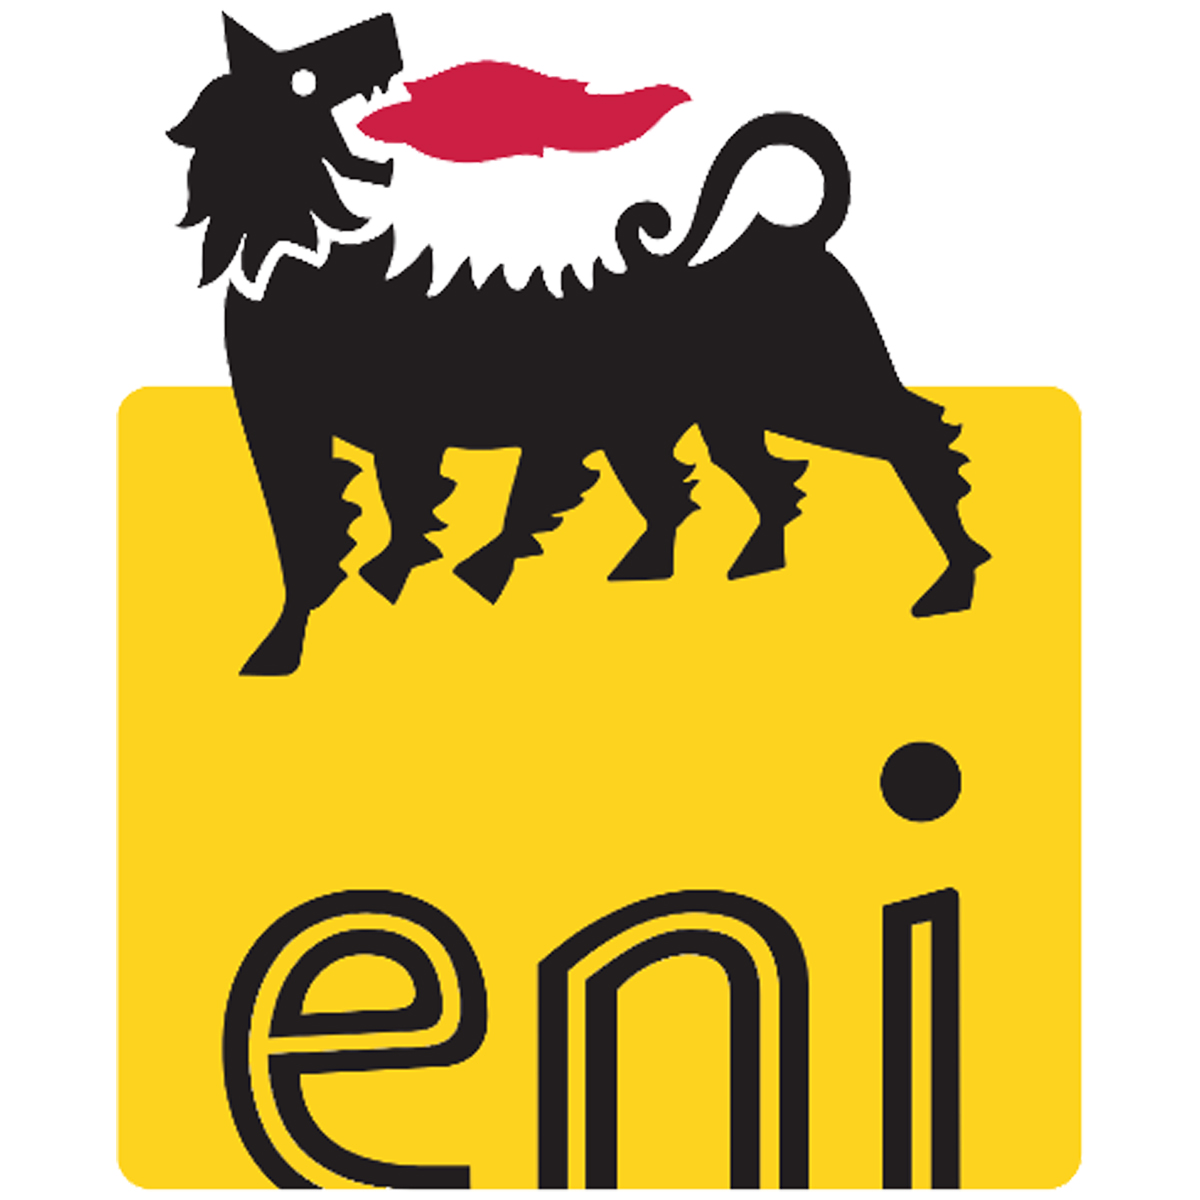 Eni: SCAM's Customer